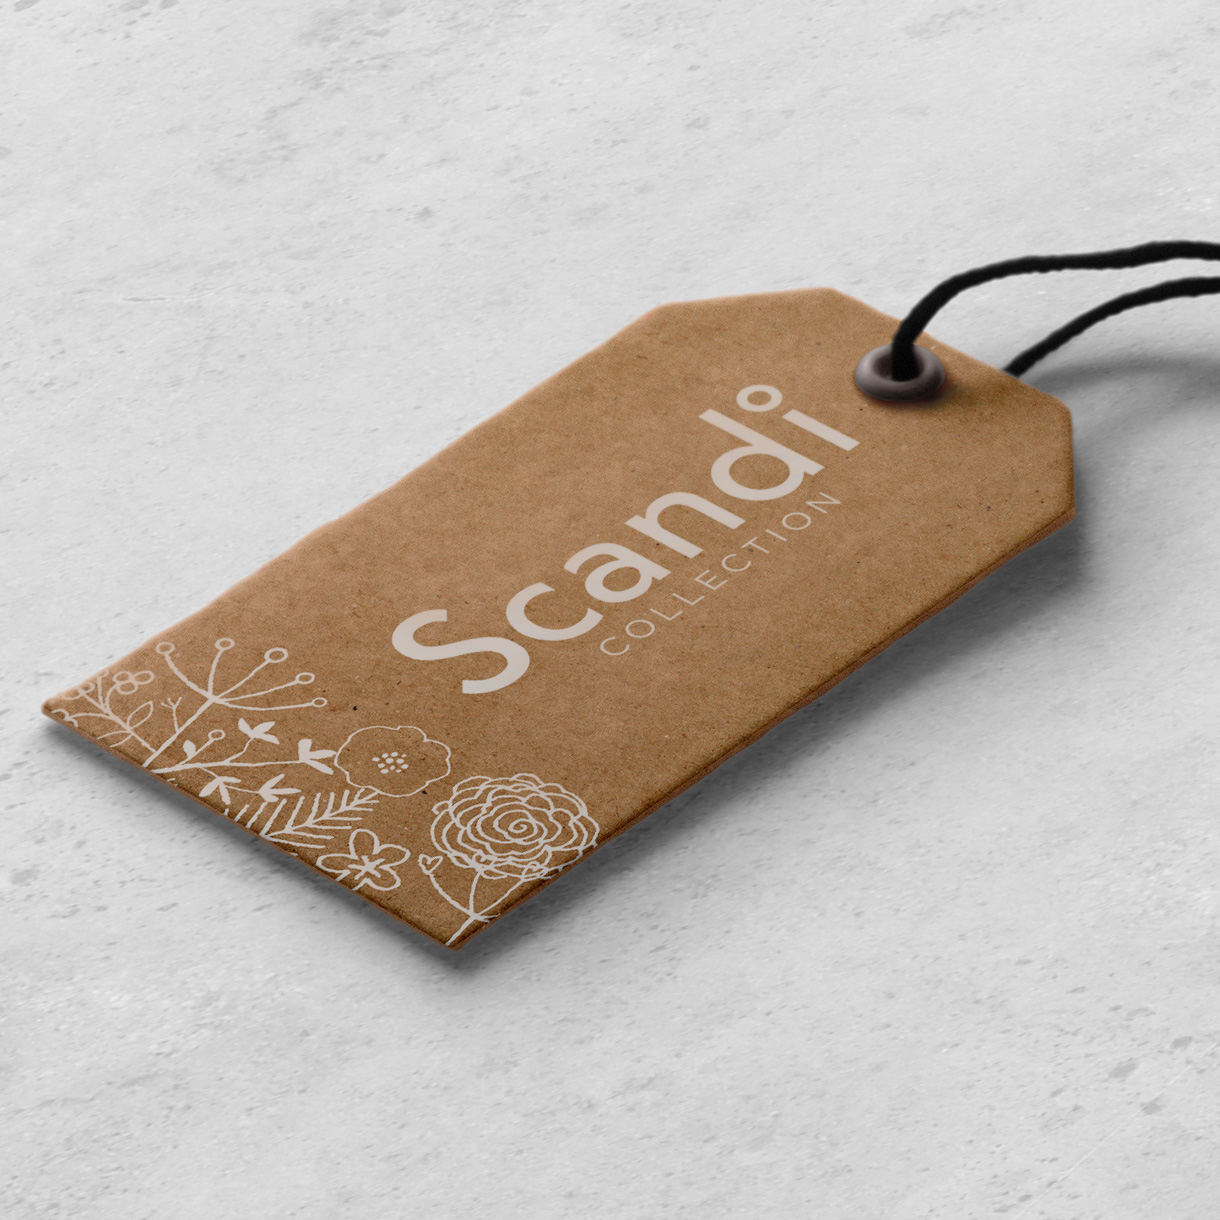 Principle brand agency Dublin Woodie's homewares brand design project scandi collection swing tag